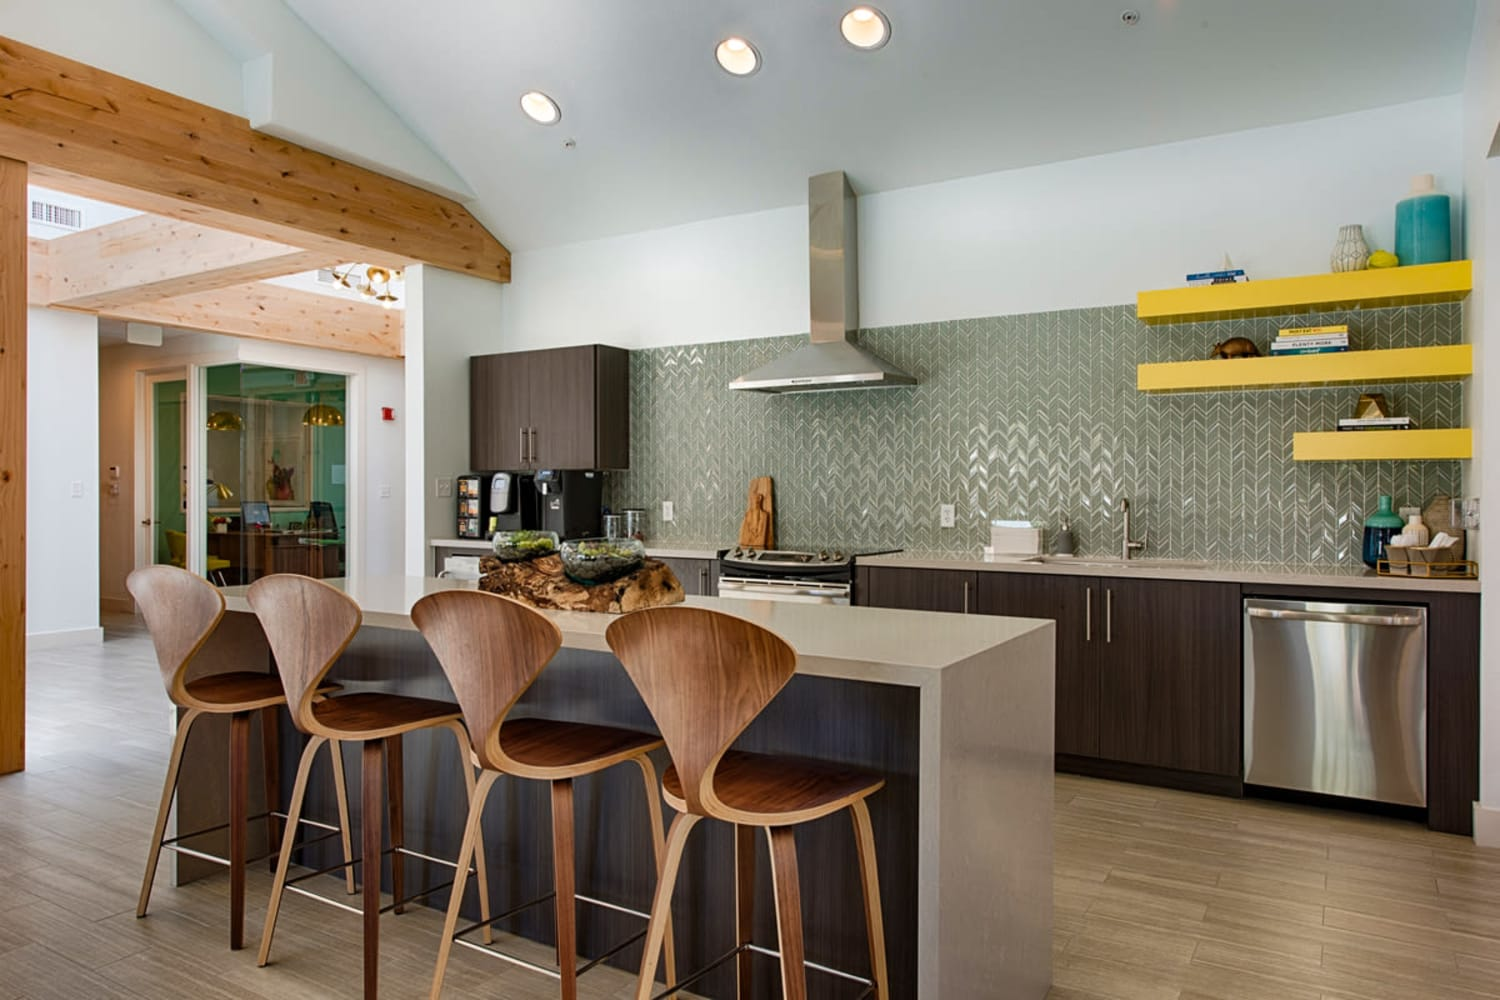 Sonoran Vista Apartments in Scottsdale, Arizona, offer a clean and modern clubhouse kitchen